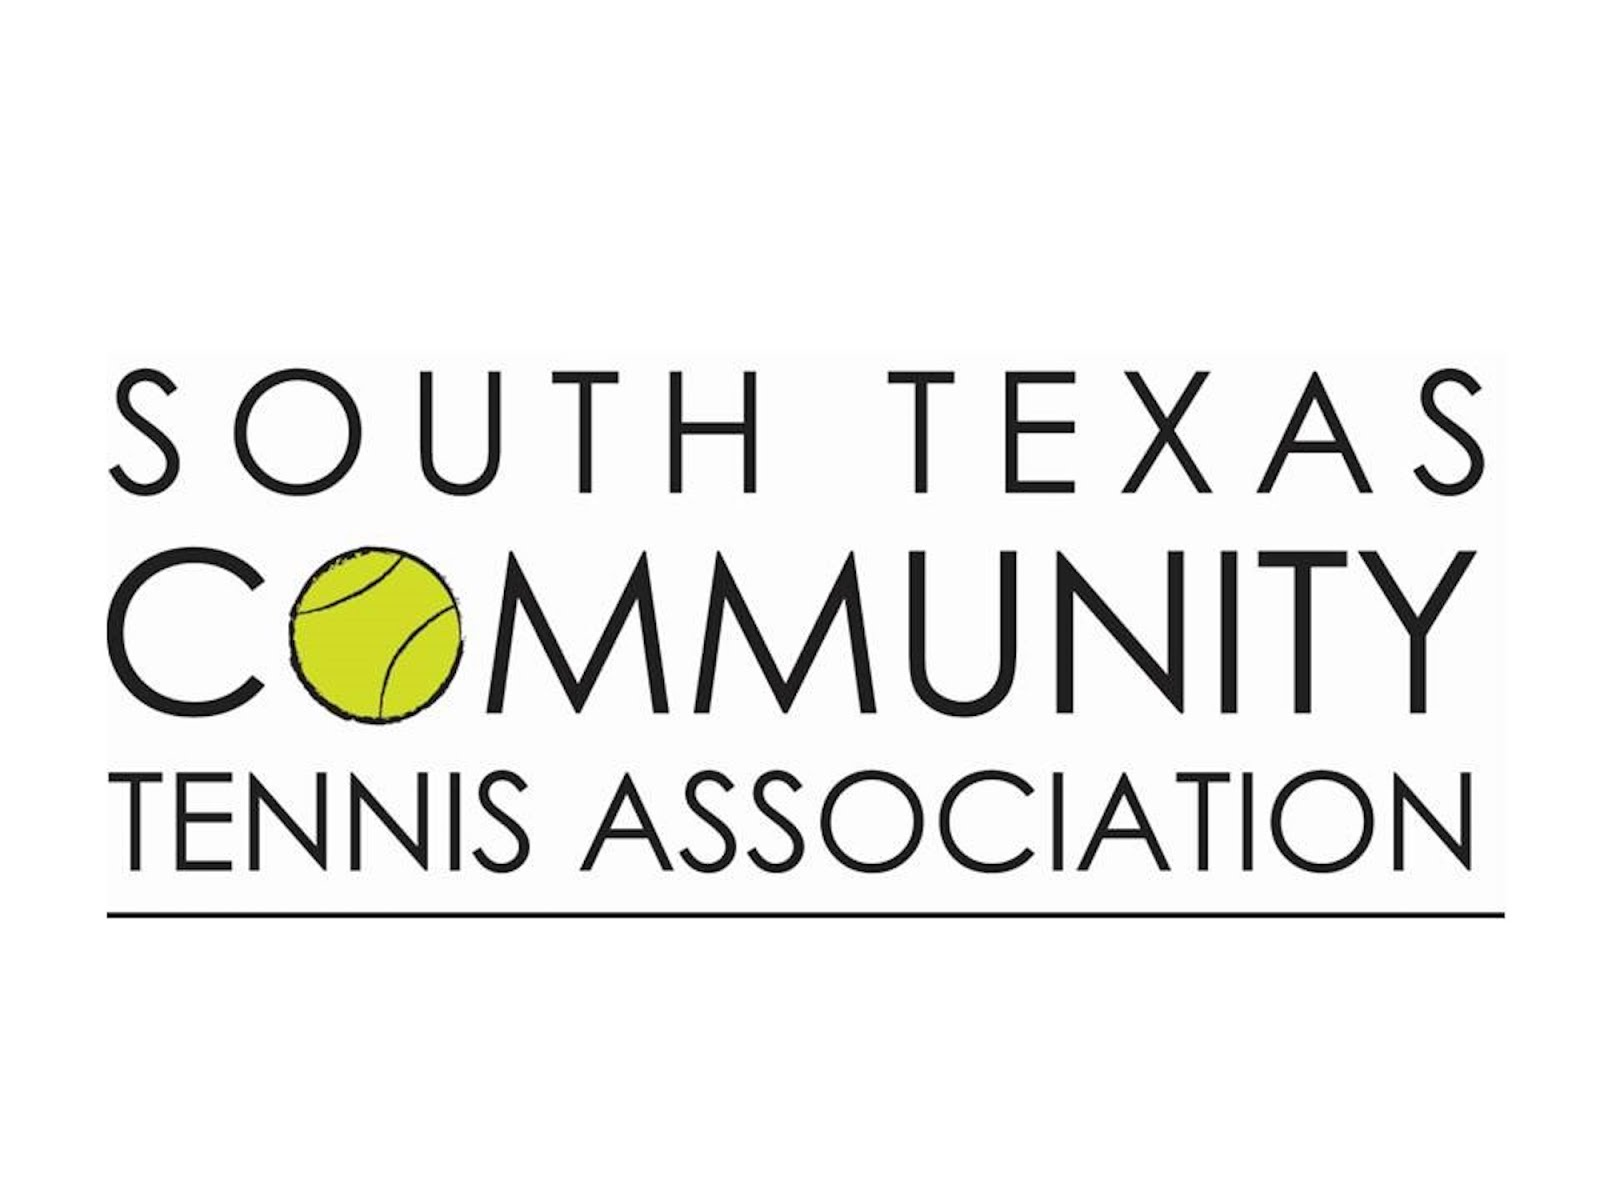 South Texas Community Tennis Association